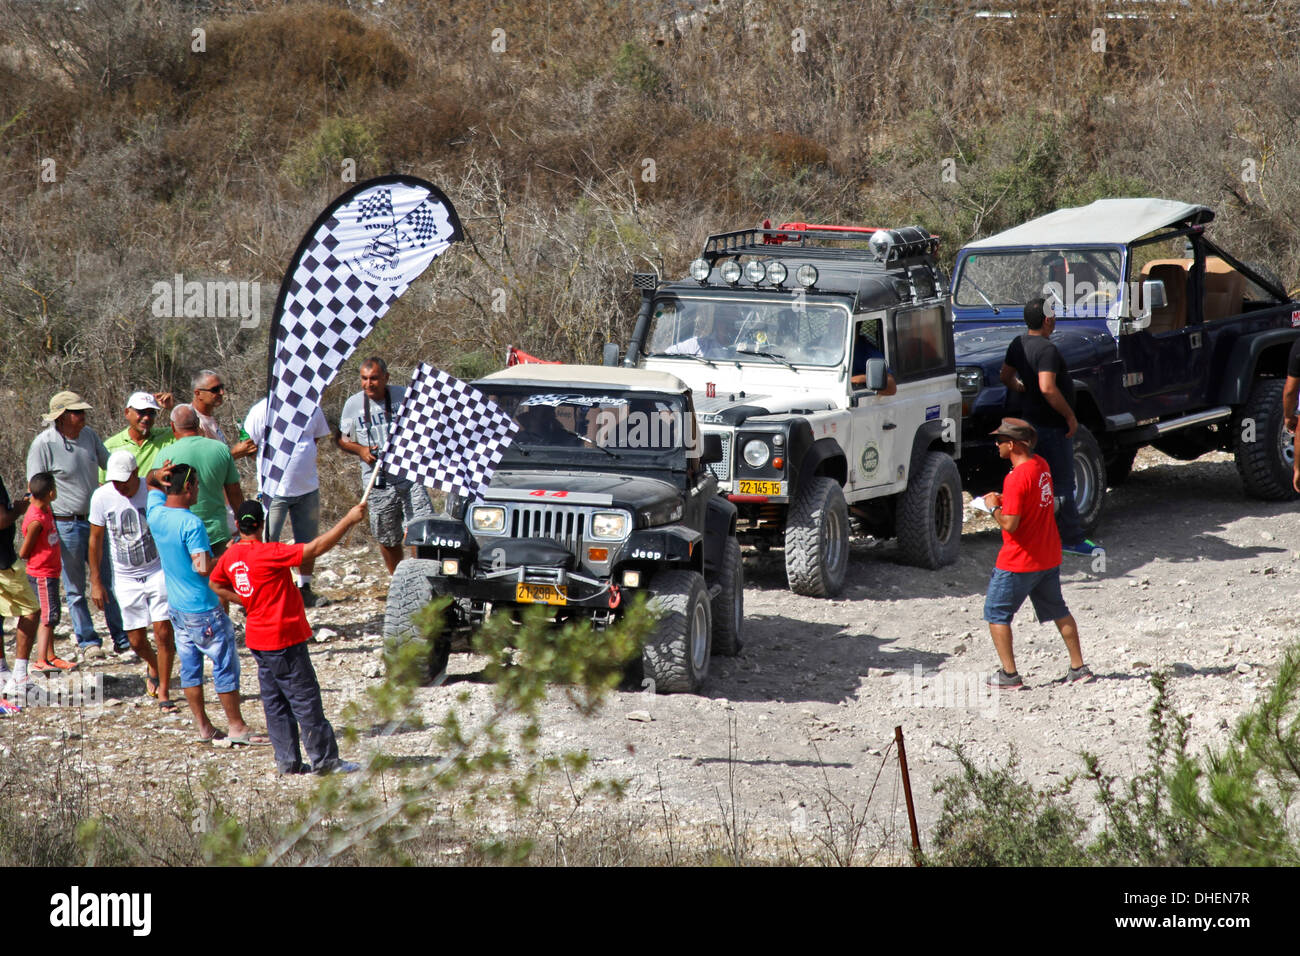 Cross Country 4x4 >> Cross Country Rally A 4x4 Event Photographed In Israel